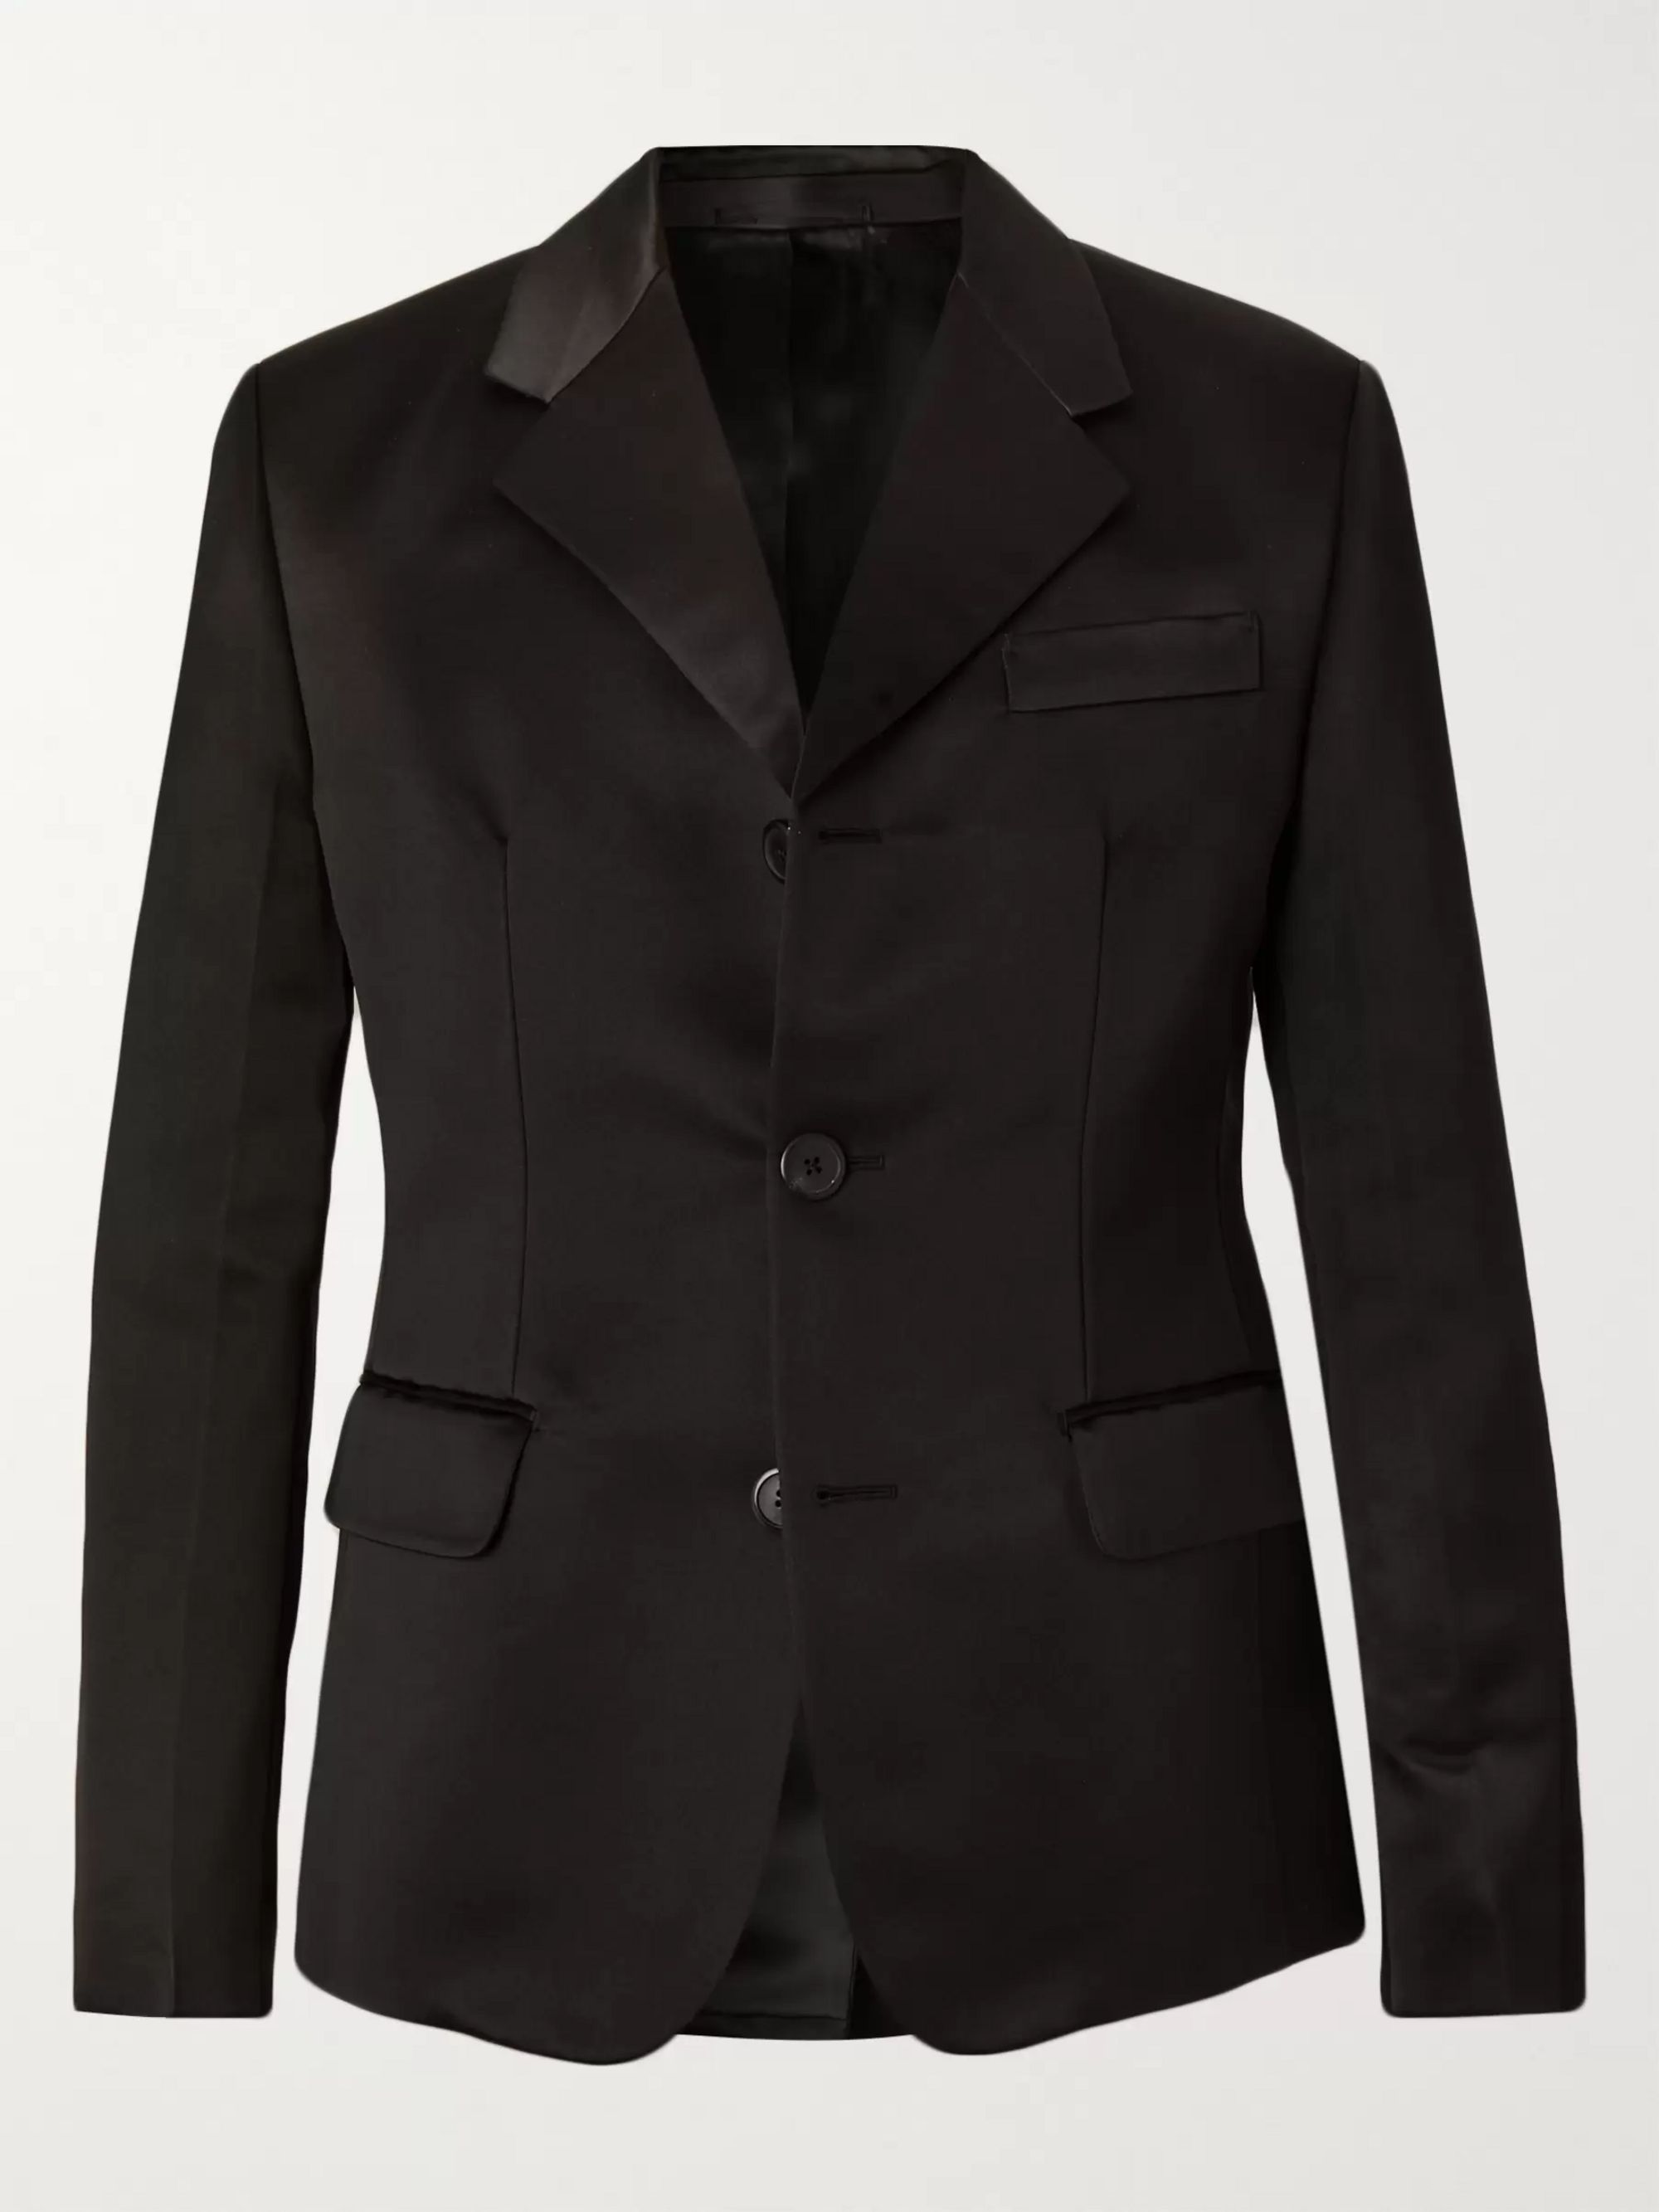 Prada Black Silk-Satin Suit Jacket